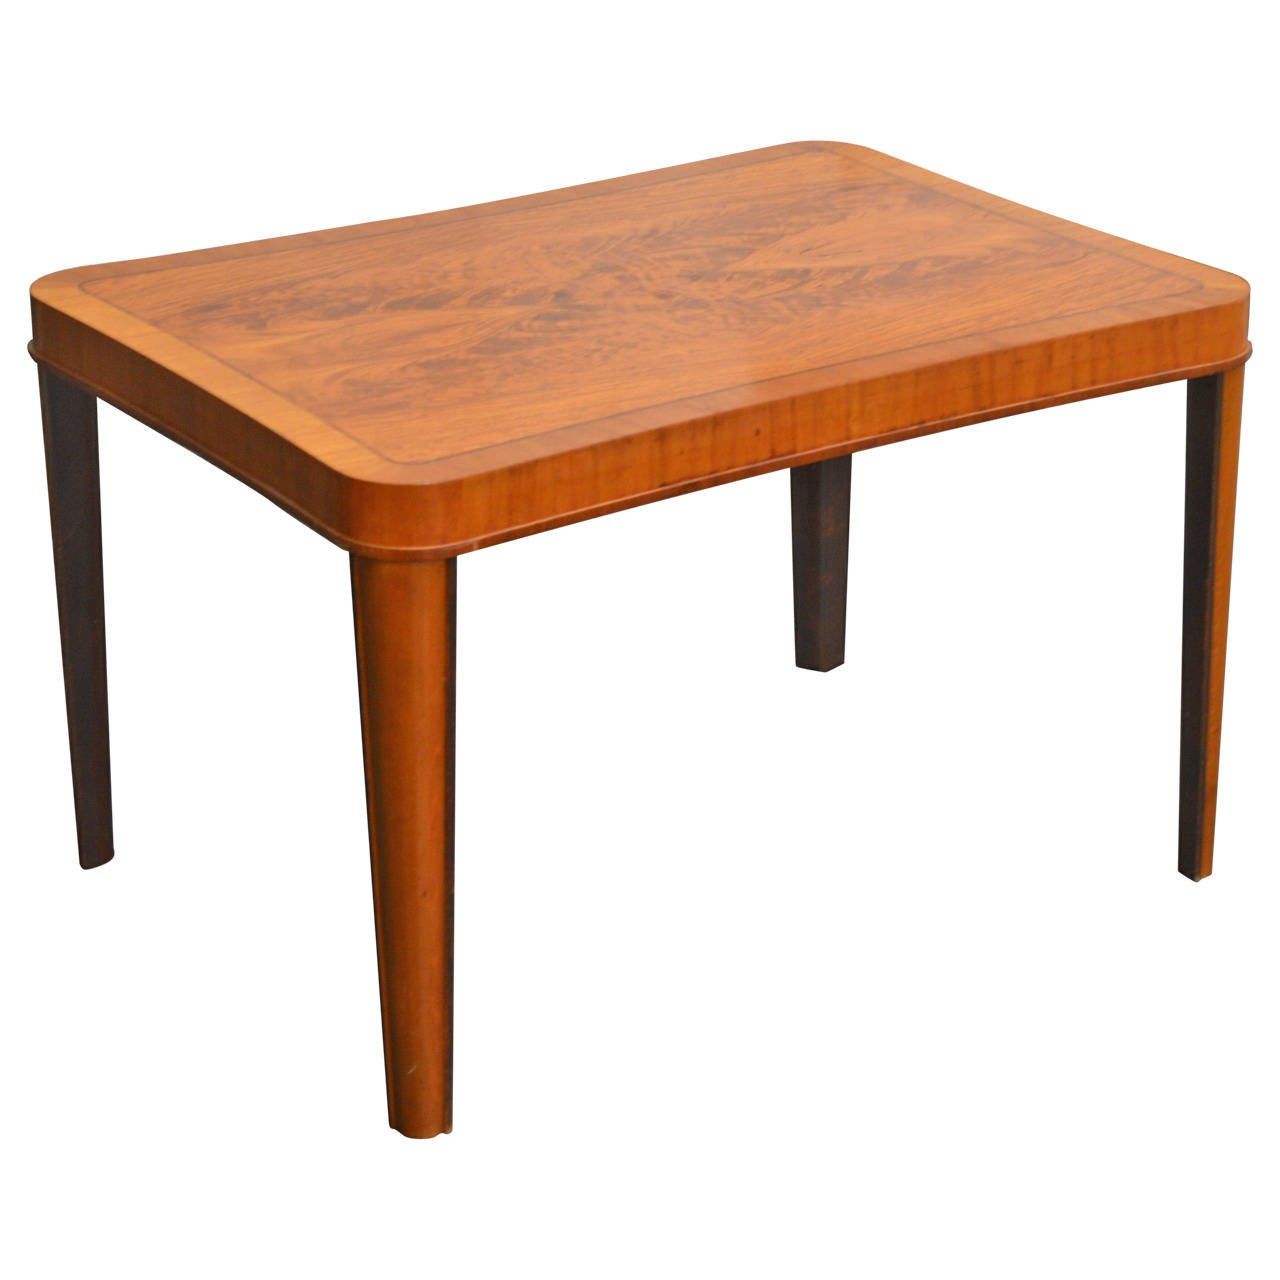 art moderne furniture. swedish art moderne walnut intarsia coffee or side table 1 furniture